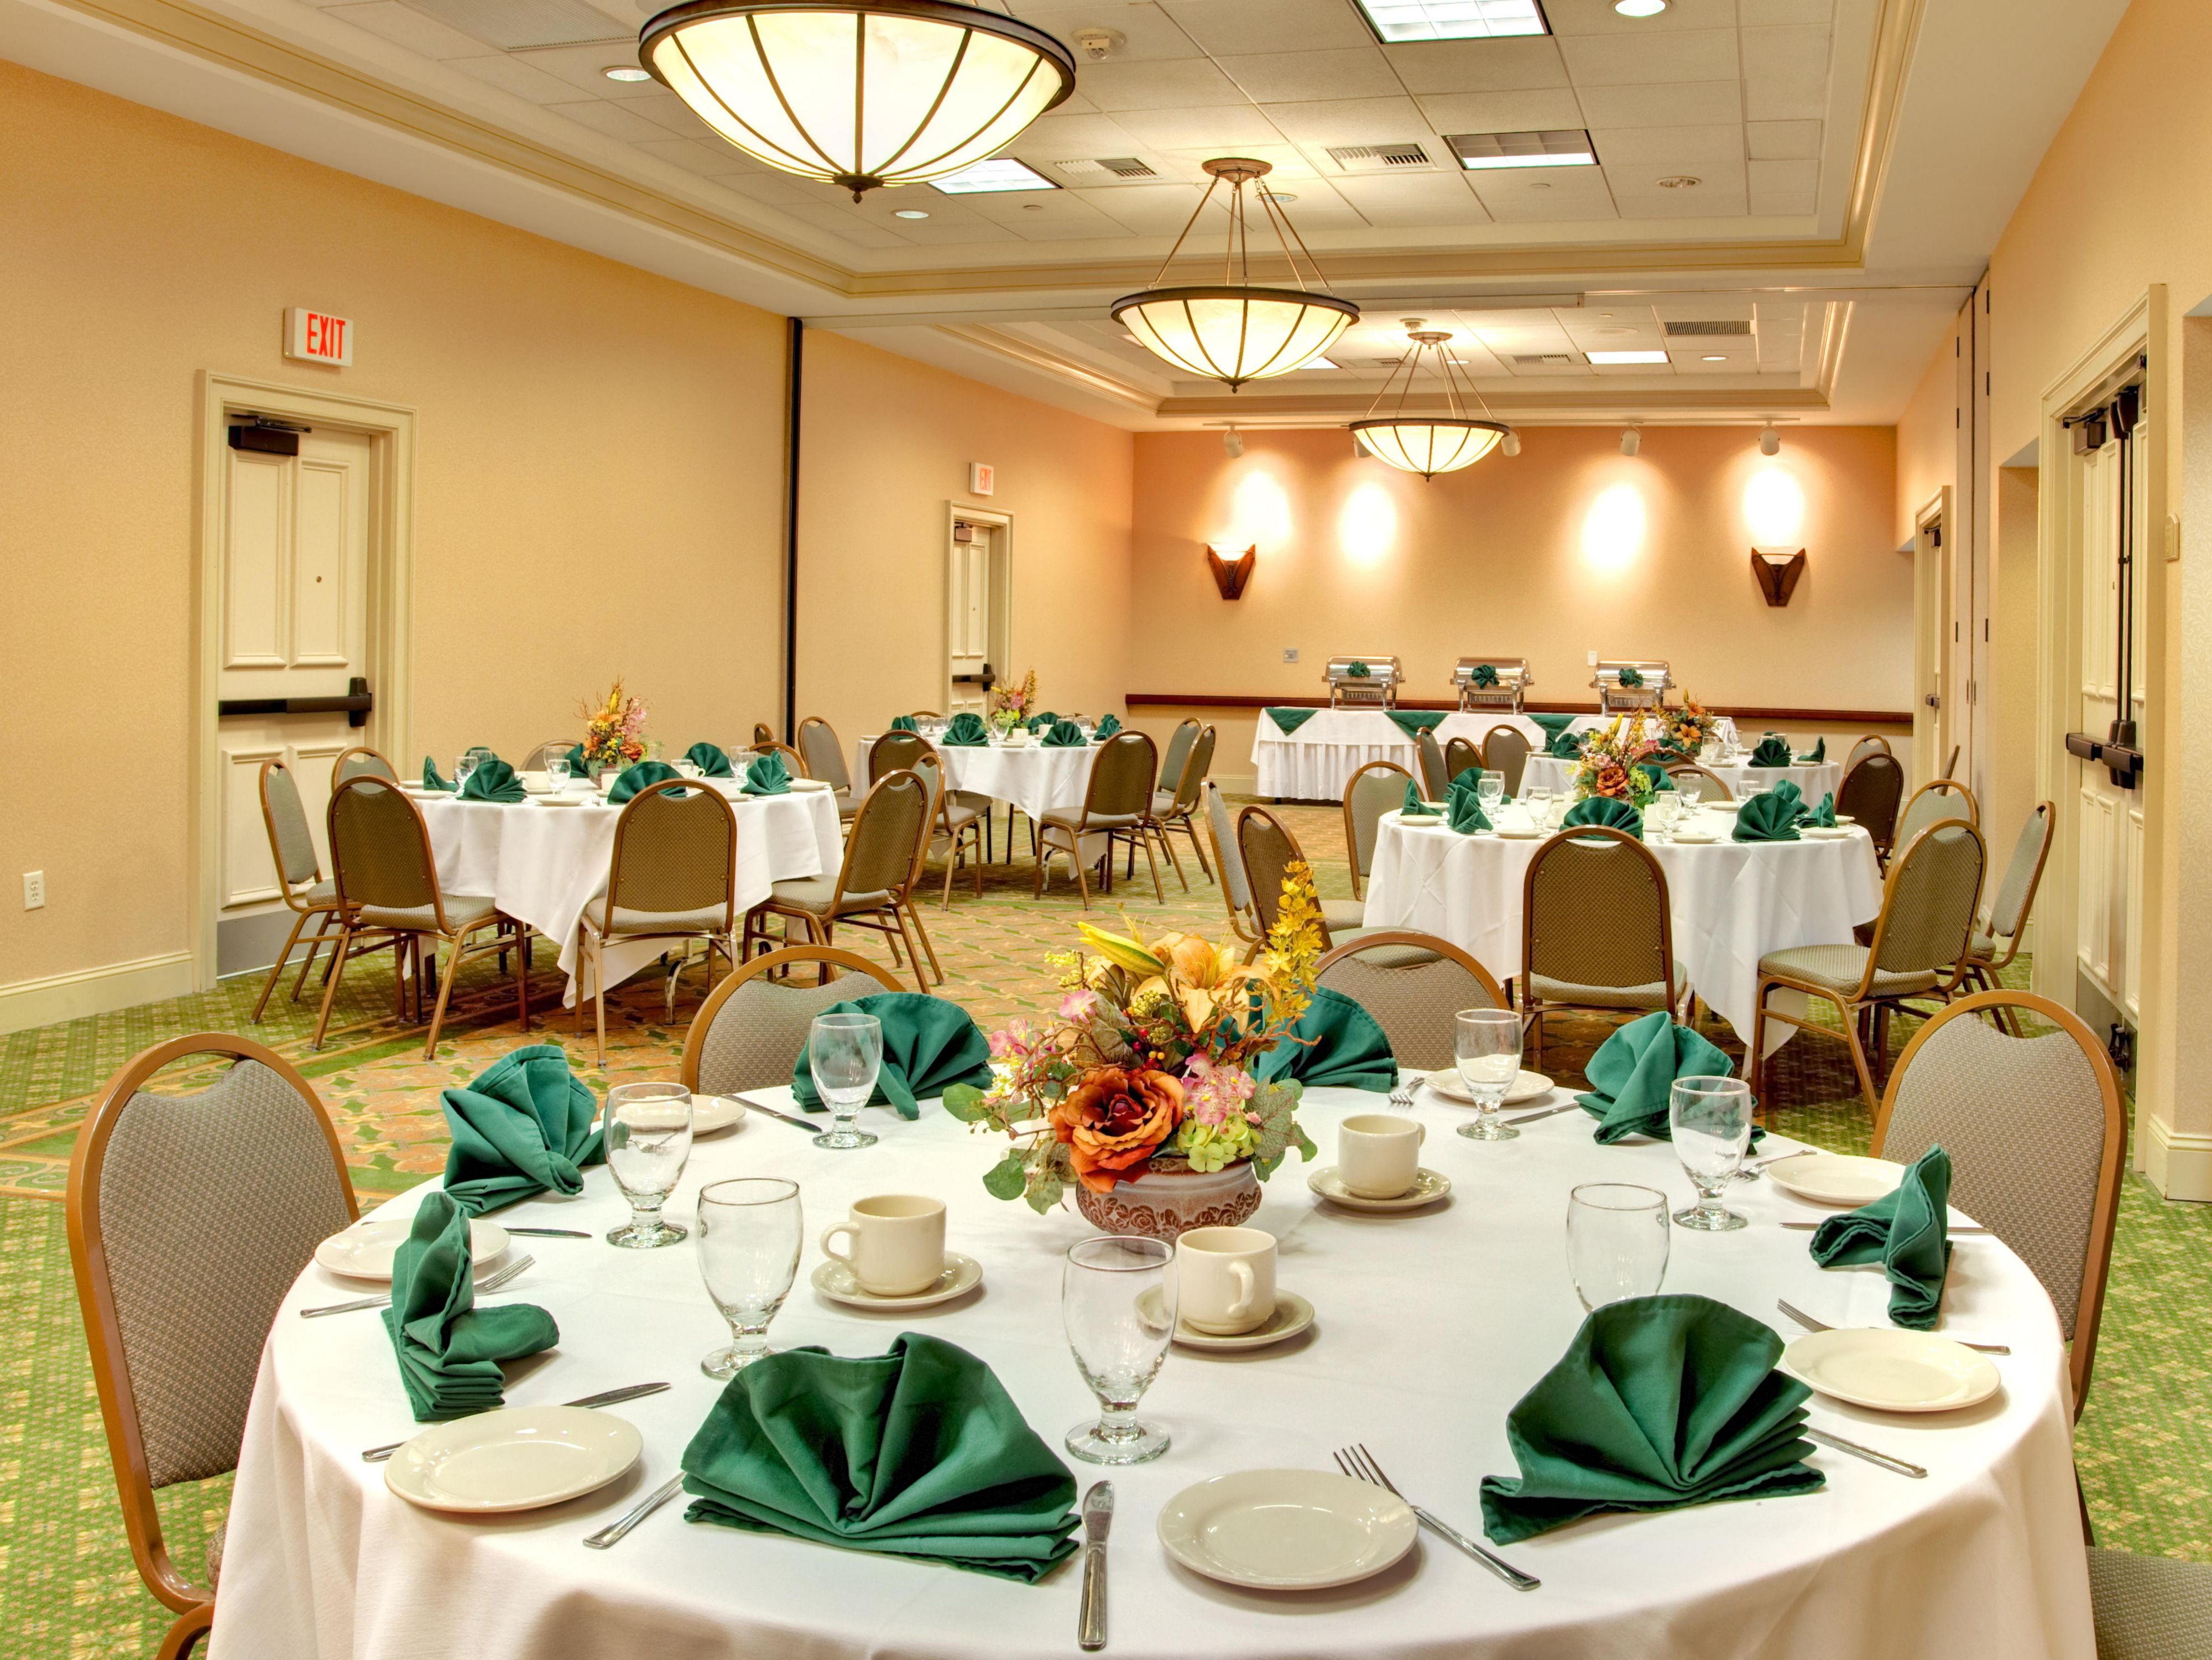 Our catering team will service your banquet or reception